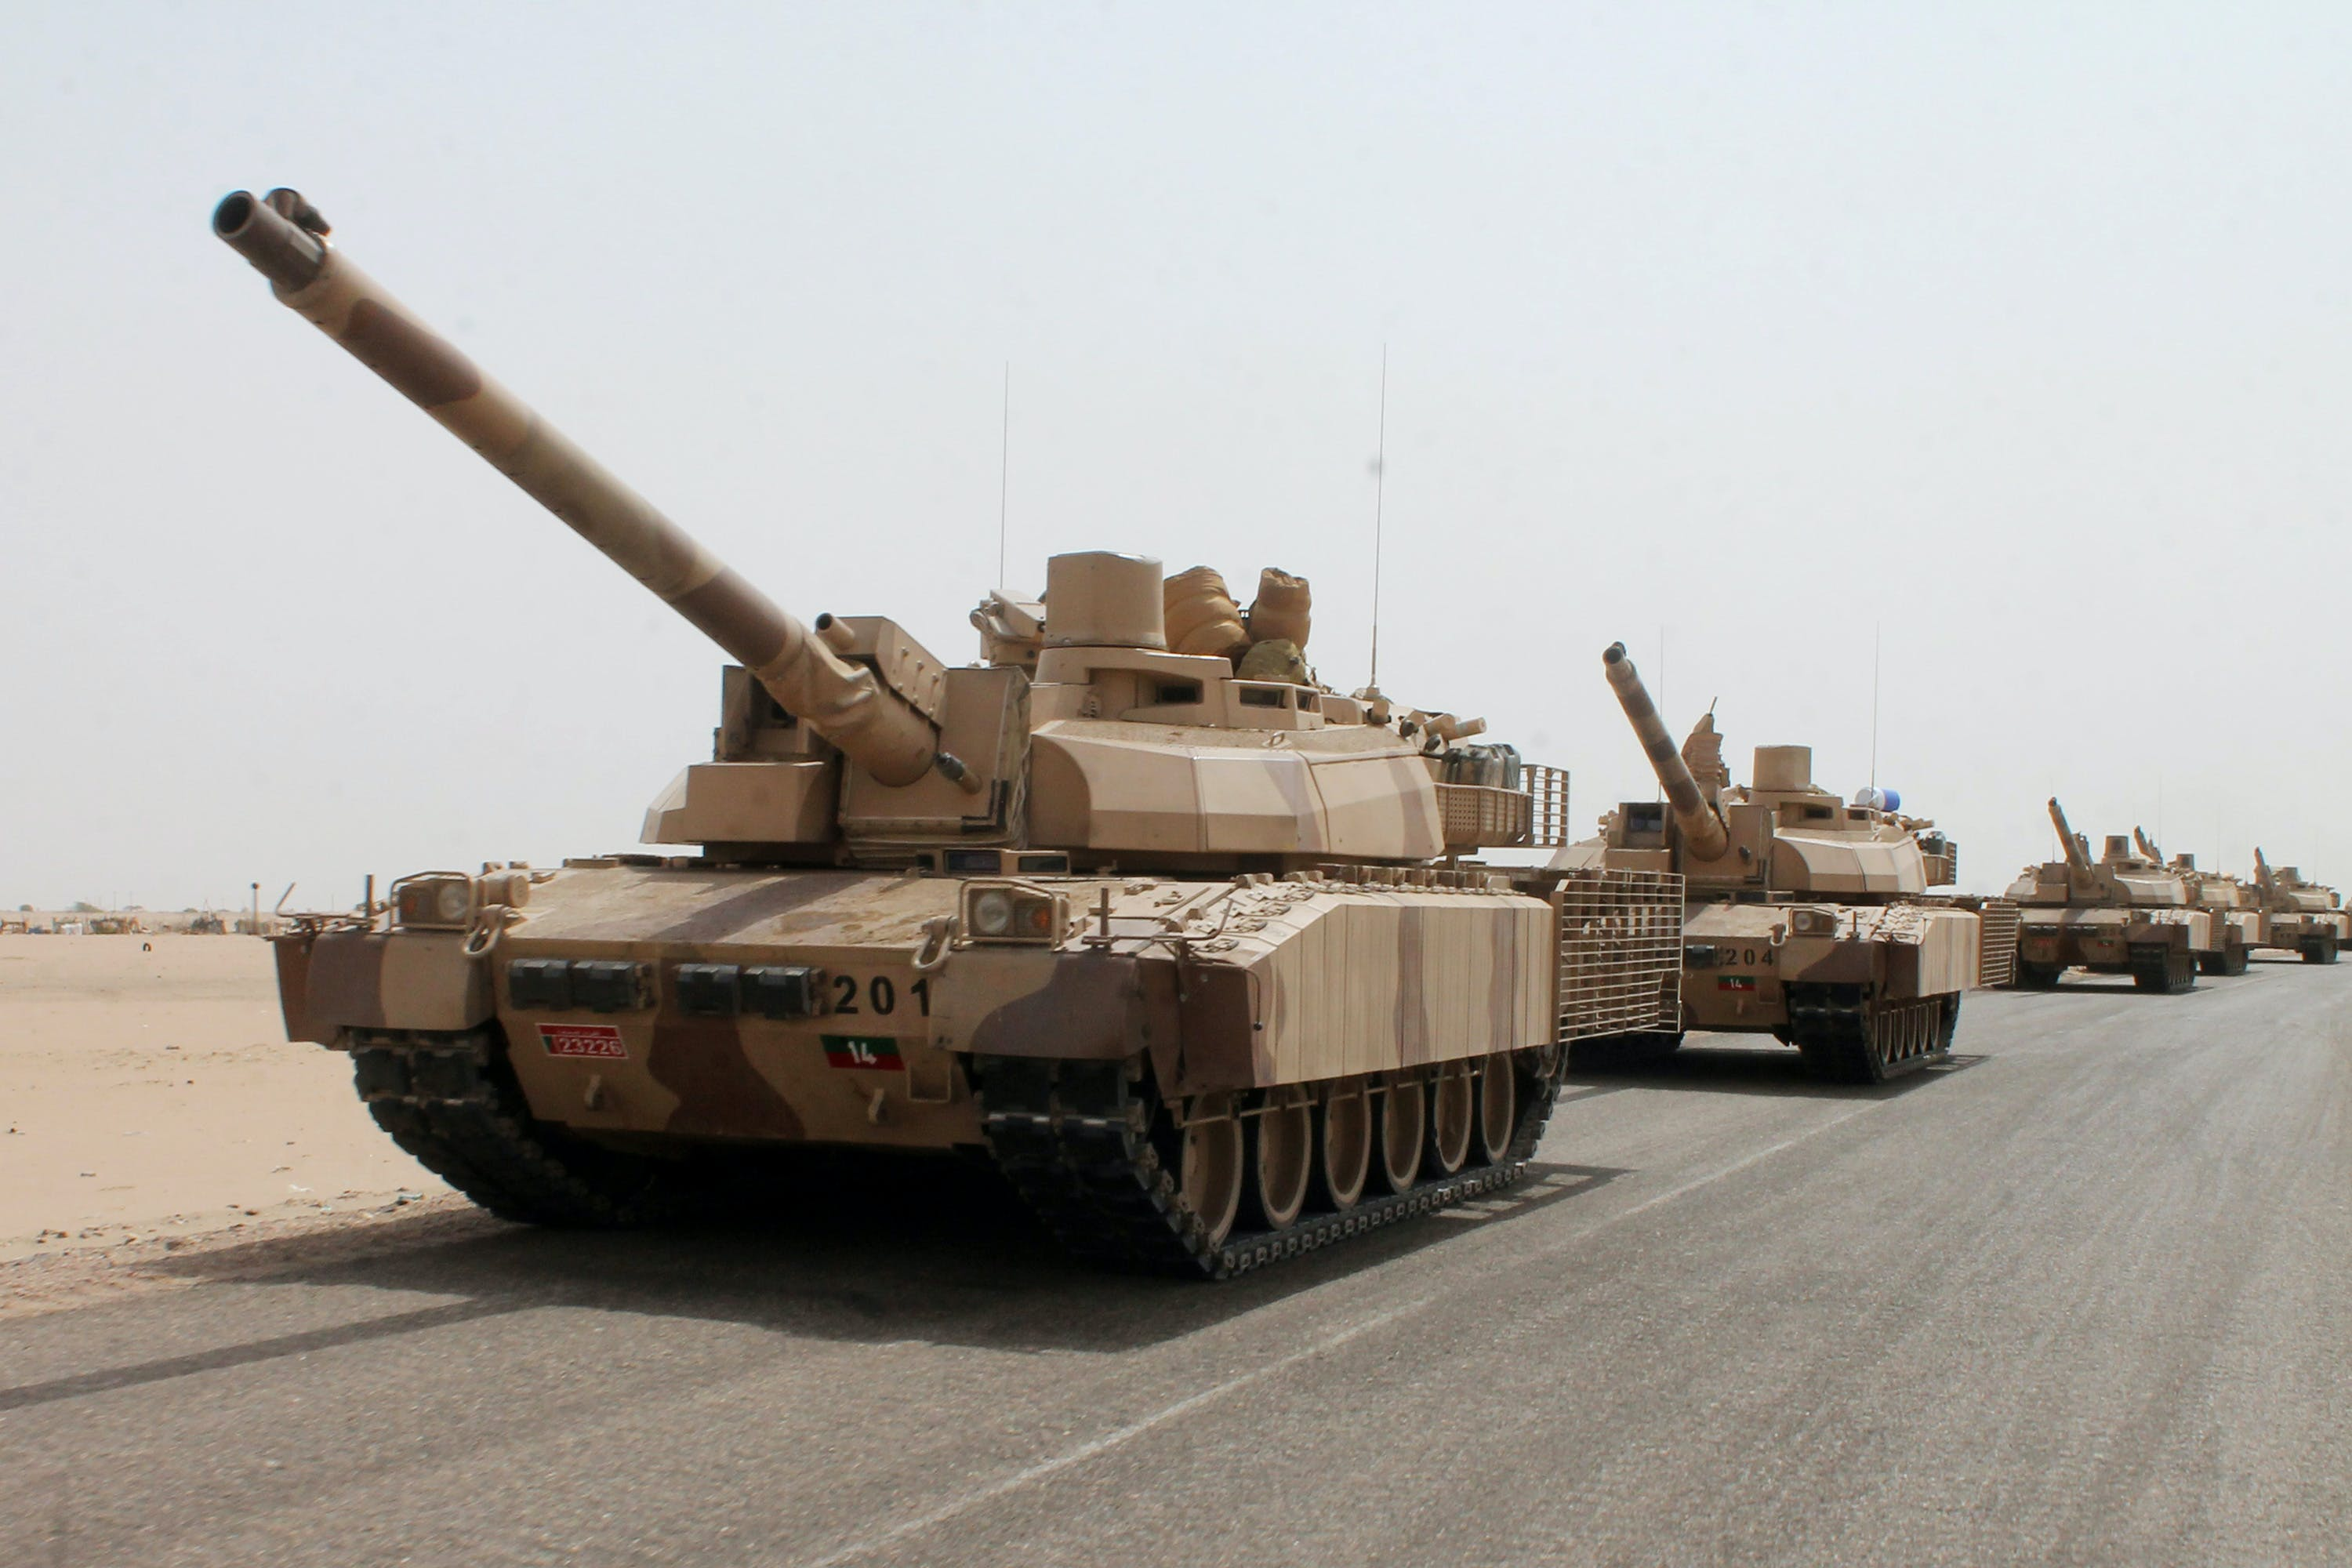 French-made Leclerc tanks of the Saudi-led coalition are deployed on the outskirts of the southern Yemeni port city of Aden on August 3, 2015, during a military operation against Shiite Huthi rebels and their allies. Pro-government forces backed by a Saudi-led coalition retook Yemen's biggest airbase from Iran-backed rebels in a significant new gain after their recapture of second city Aden last month. AFP PHOTO / SALEH AL-OBEIDI        (Photo credit should read SALEH AL-OBEIDI/AFP/Getty Images)